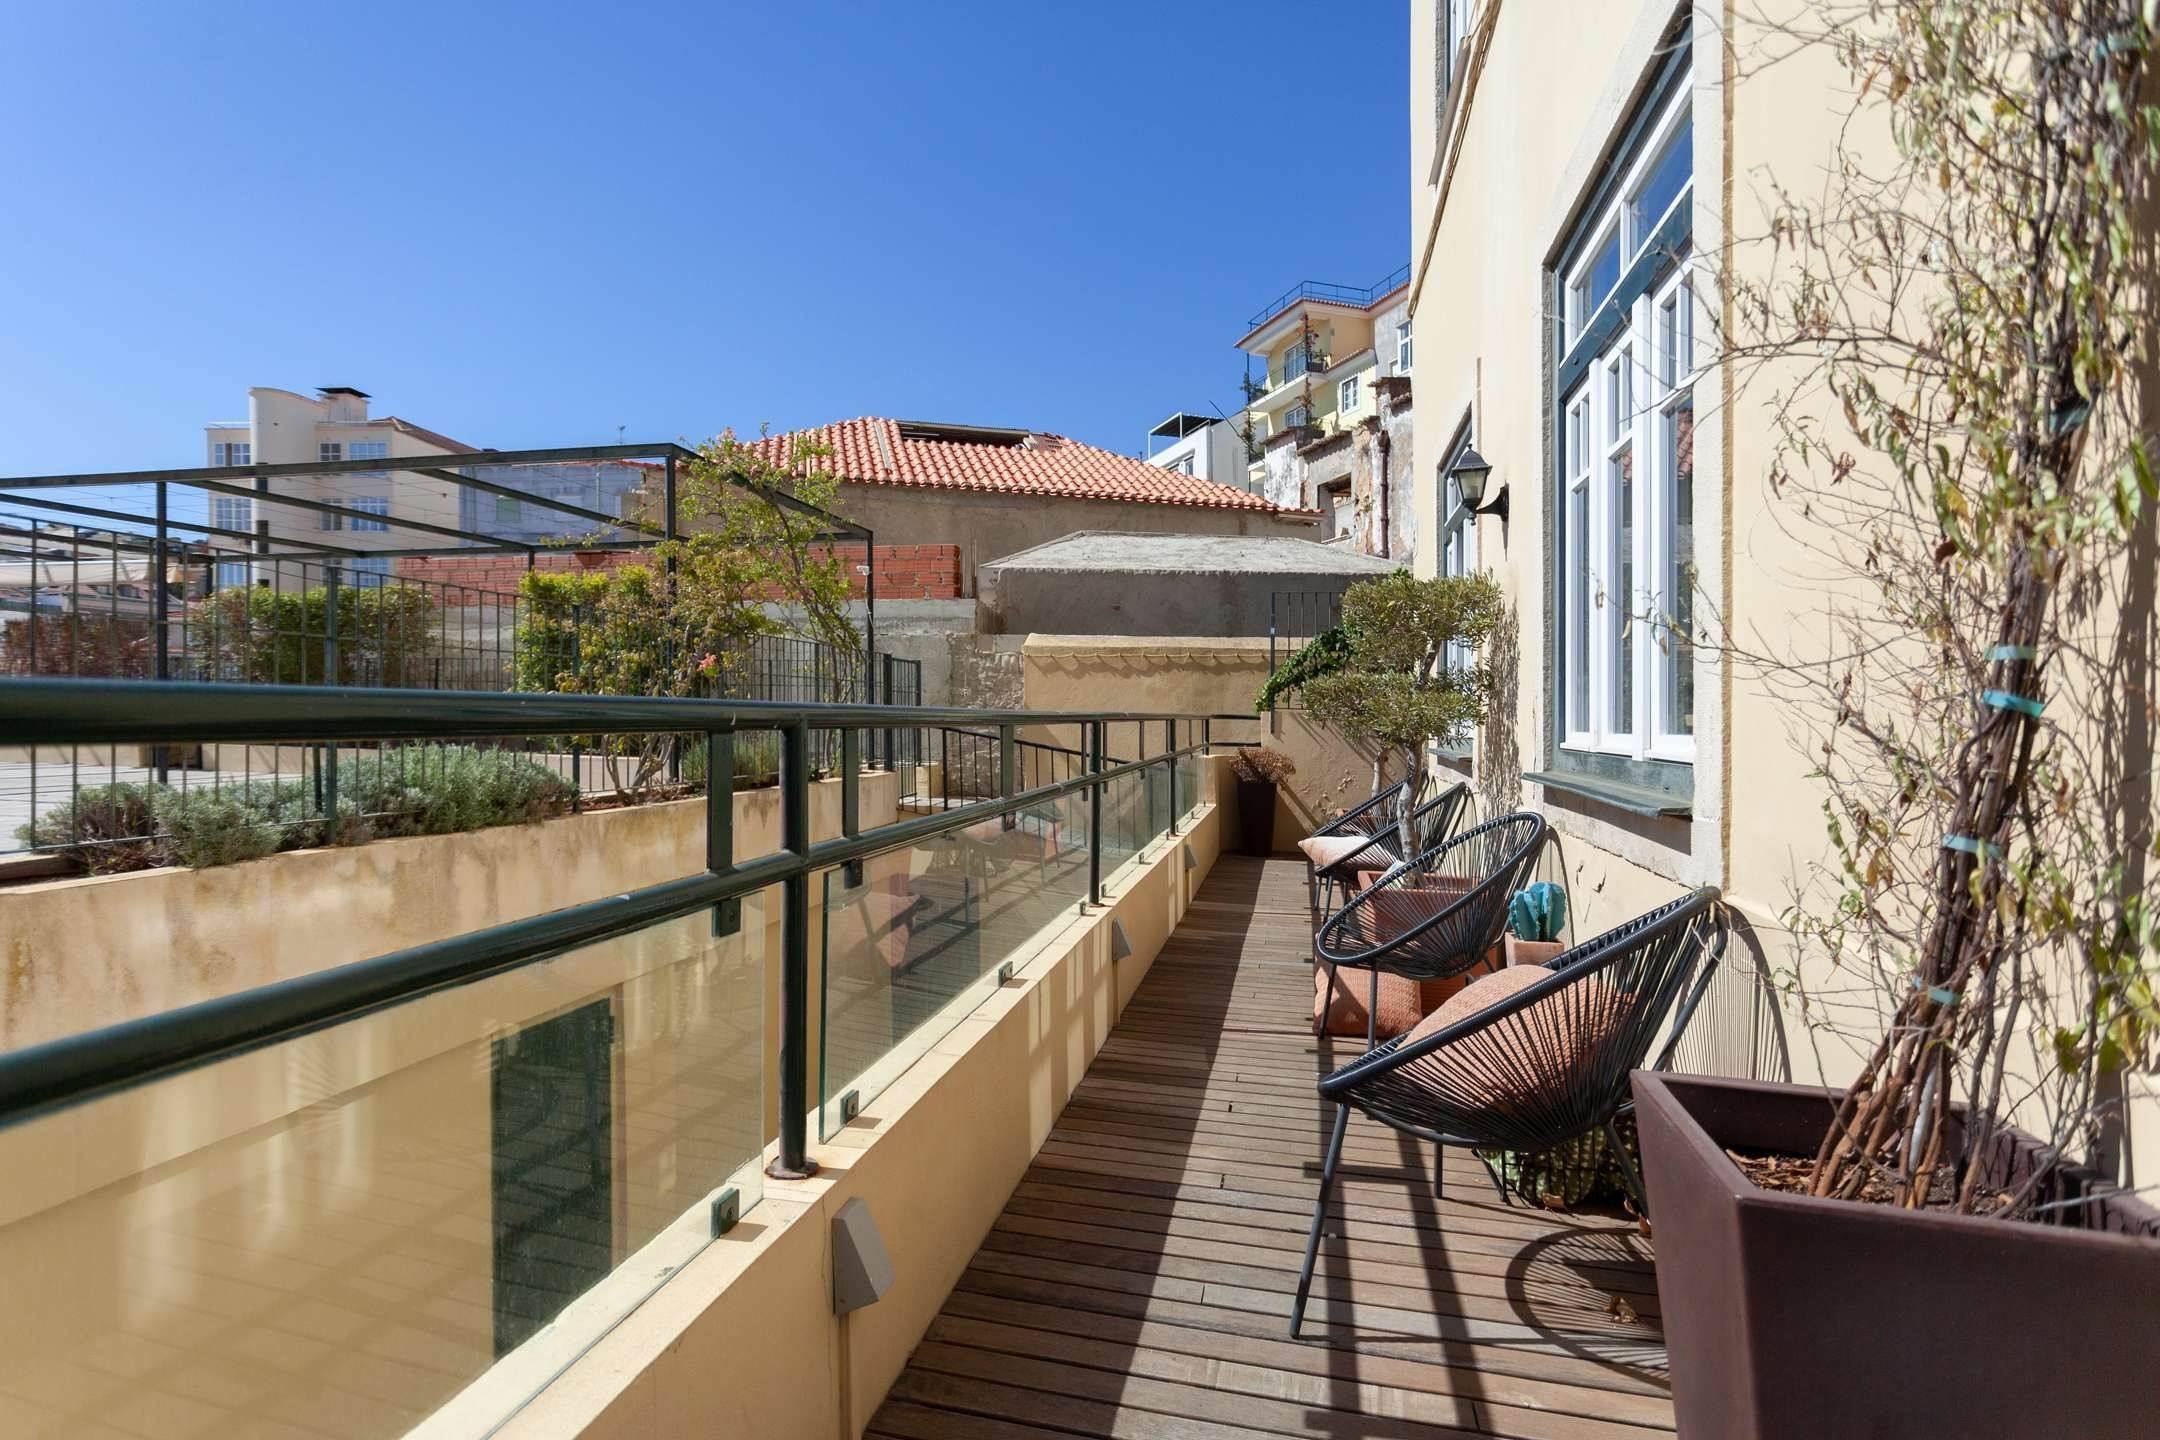 διαμερίσματα για την Πώληση στο Fantastic 4 bedroom apartment, located in Lapa, one of the most prestigious neighbourhoods of Lisbon. With an around 174... Λισαβόνα, Πορτογαλια